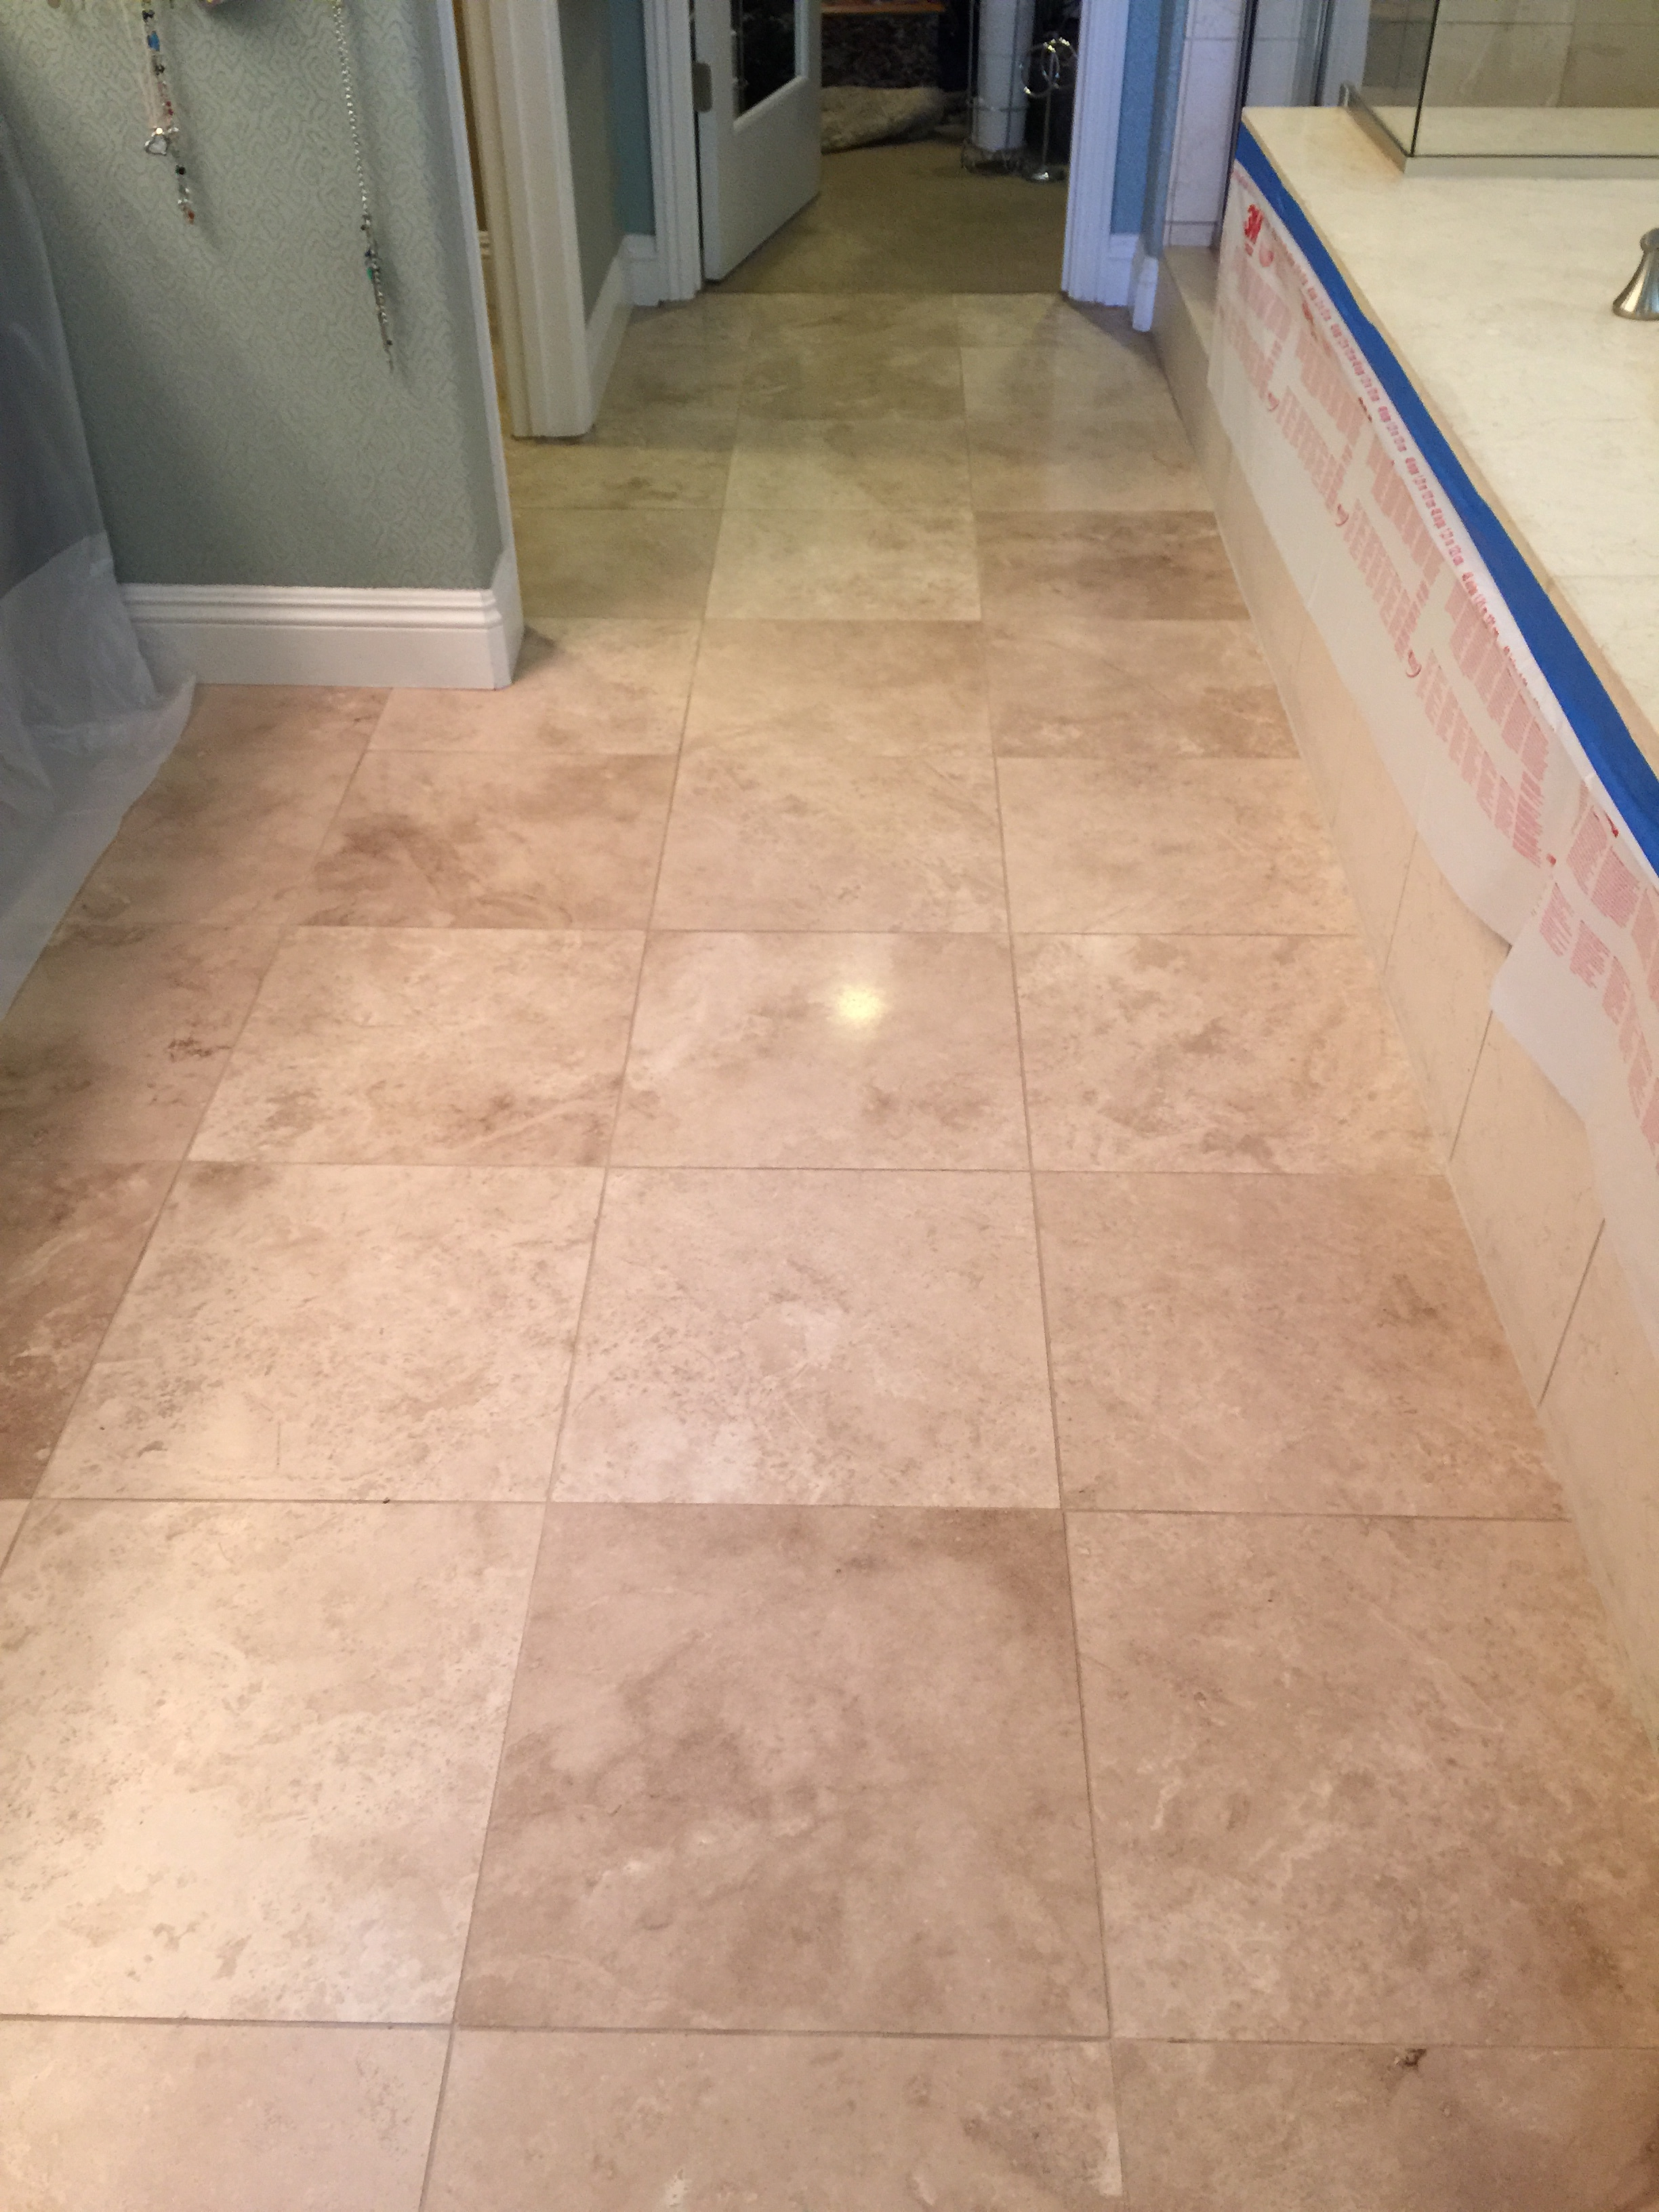 Travertine floor before coating...